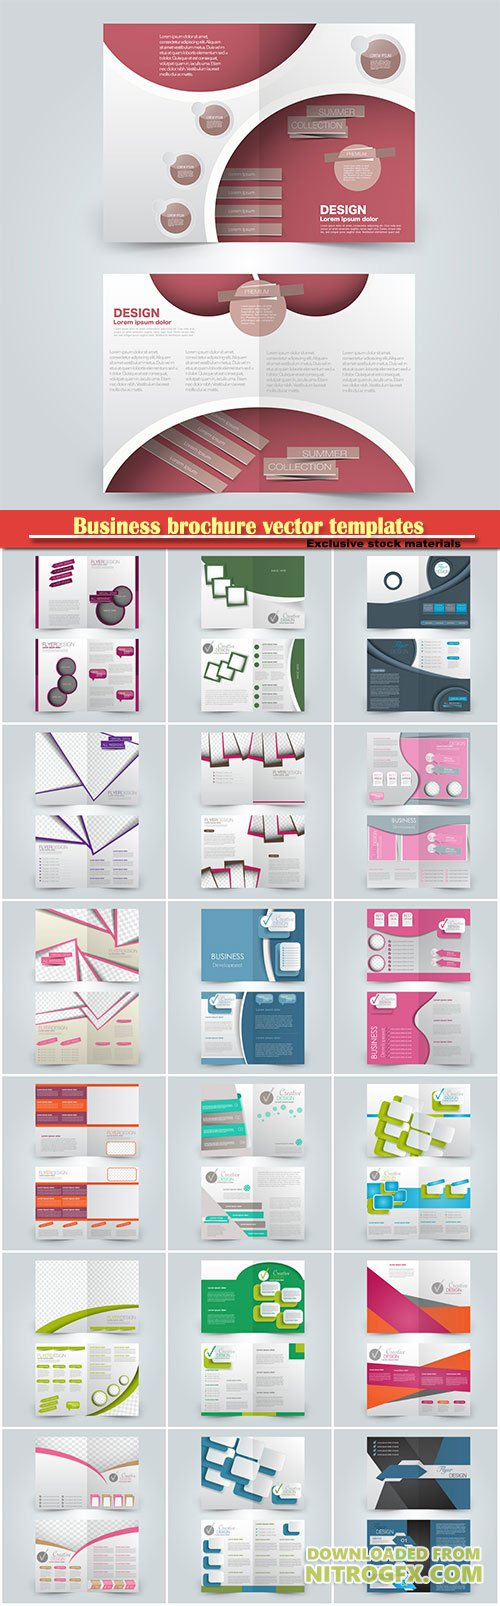 Business brochure vector templates, magazine cover, business mockup, education, presentation, report # 57